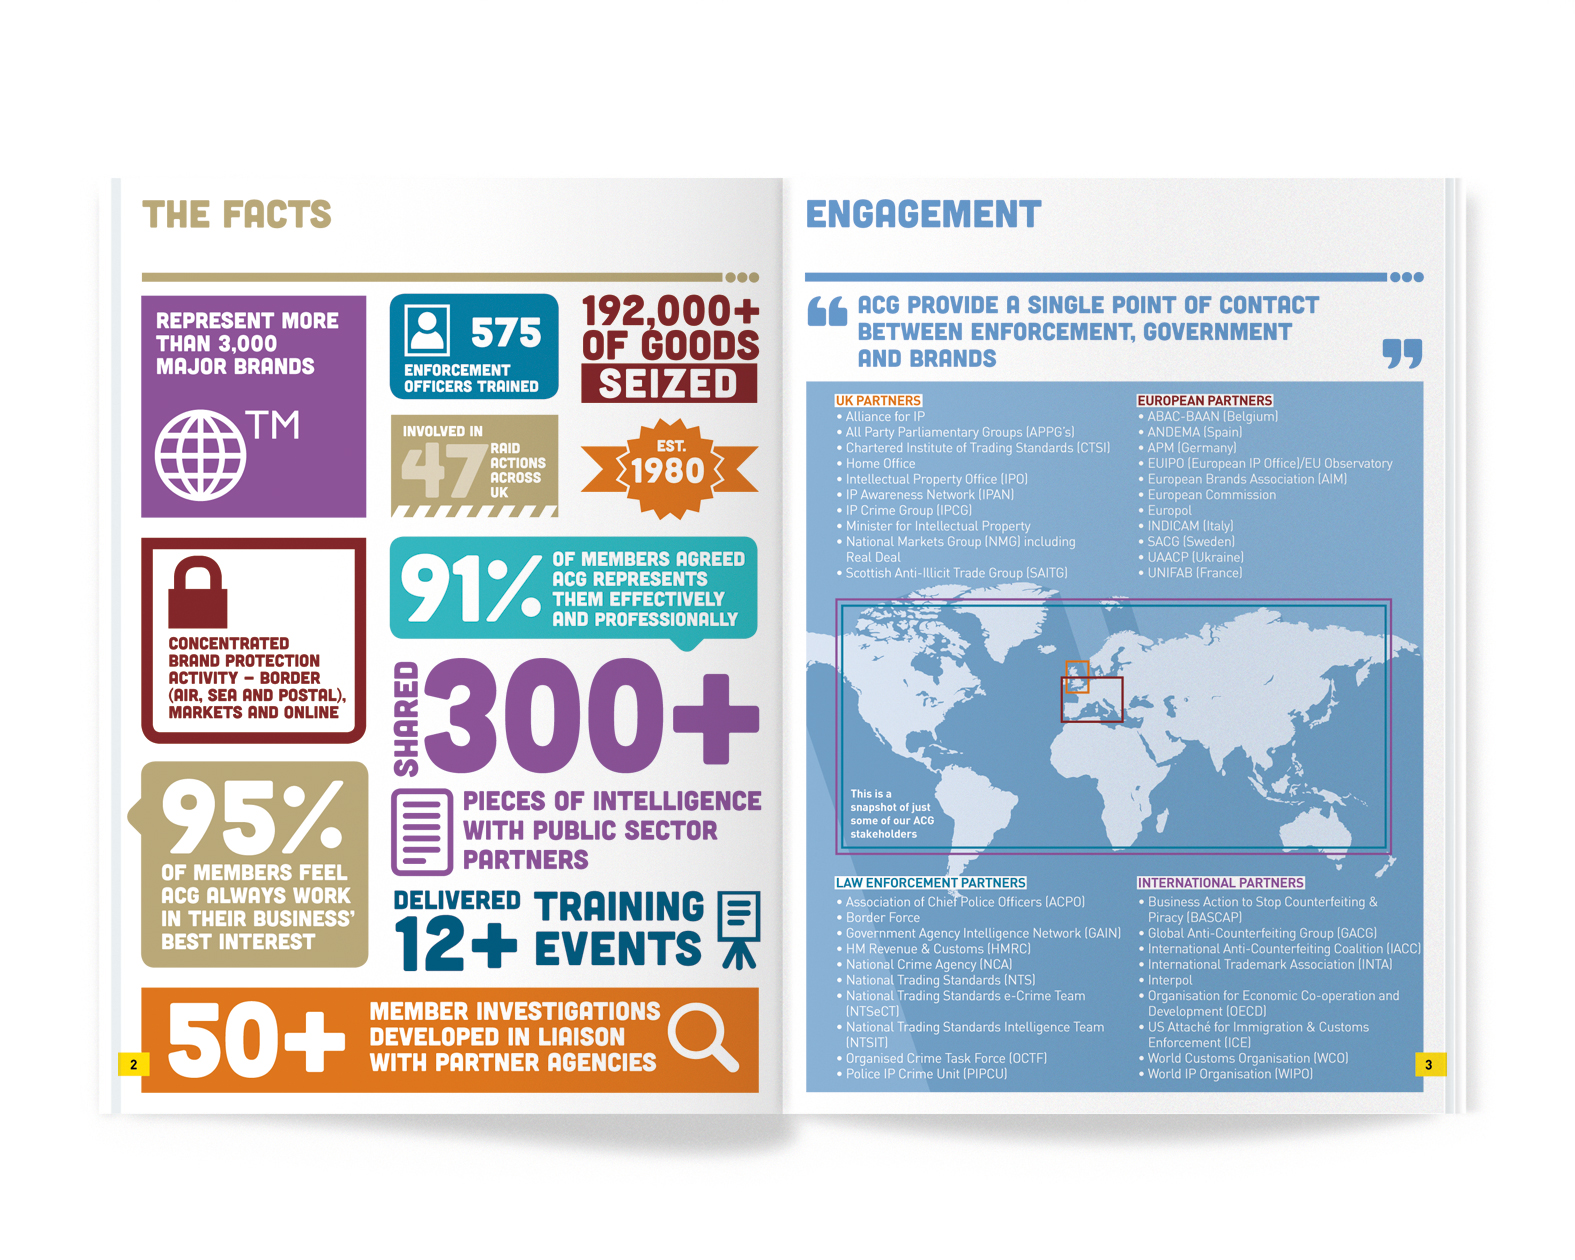 ACG annual report 2016 - Facts and Engagement pages